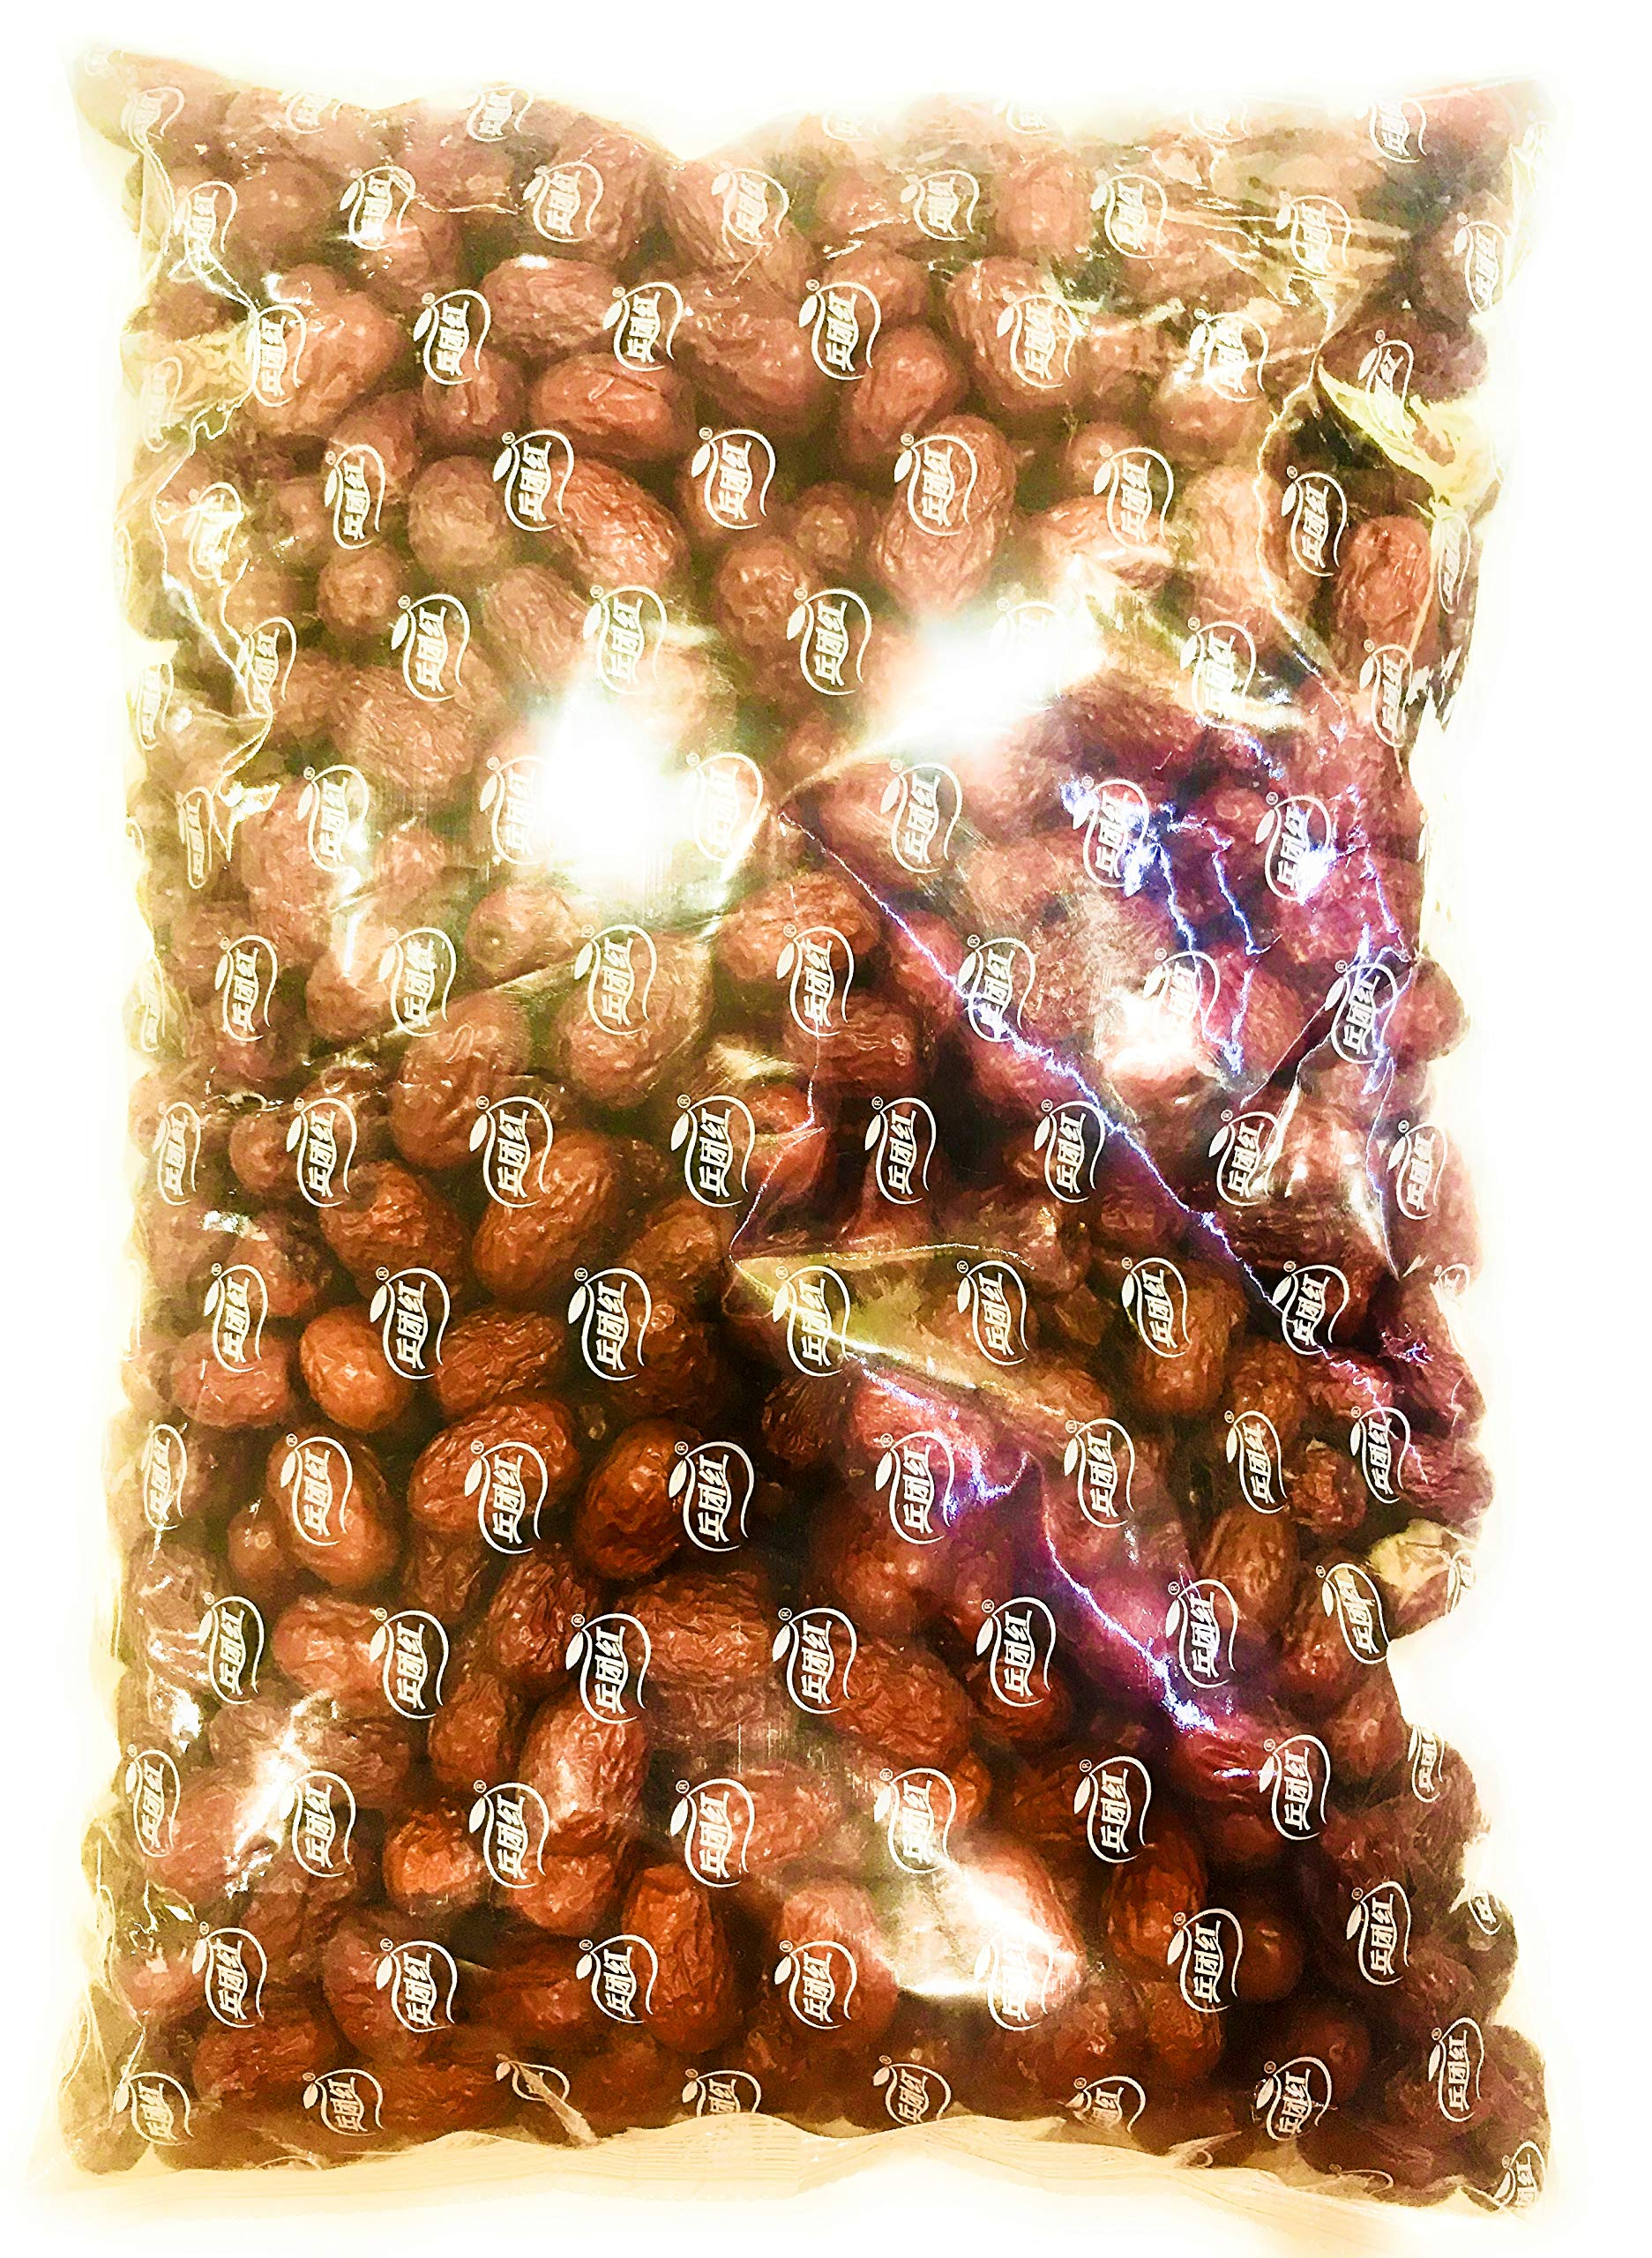 Red Jujube/Red Chinese Dates 新疆兵团红棗 (11 LB (2 Bags))